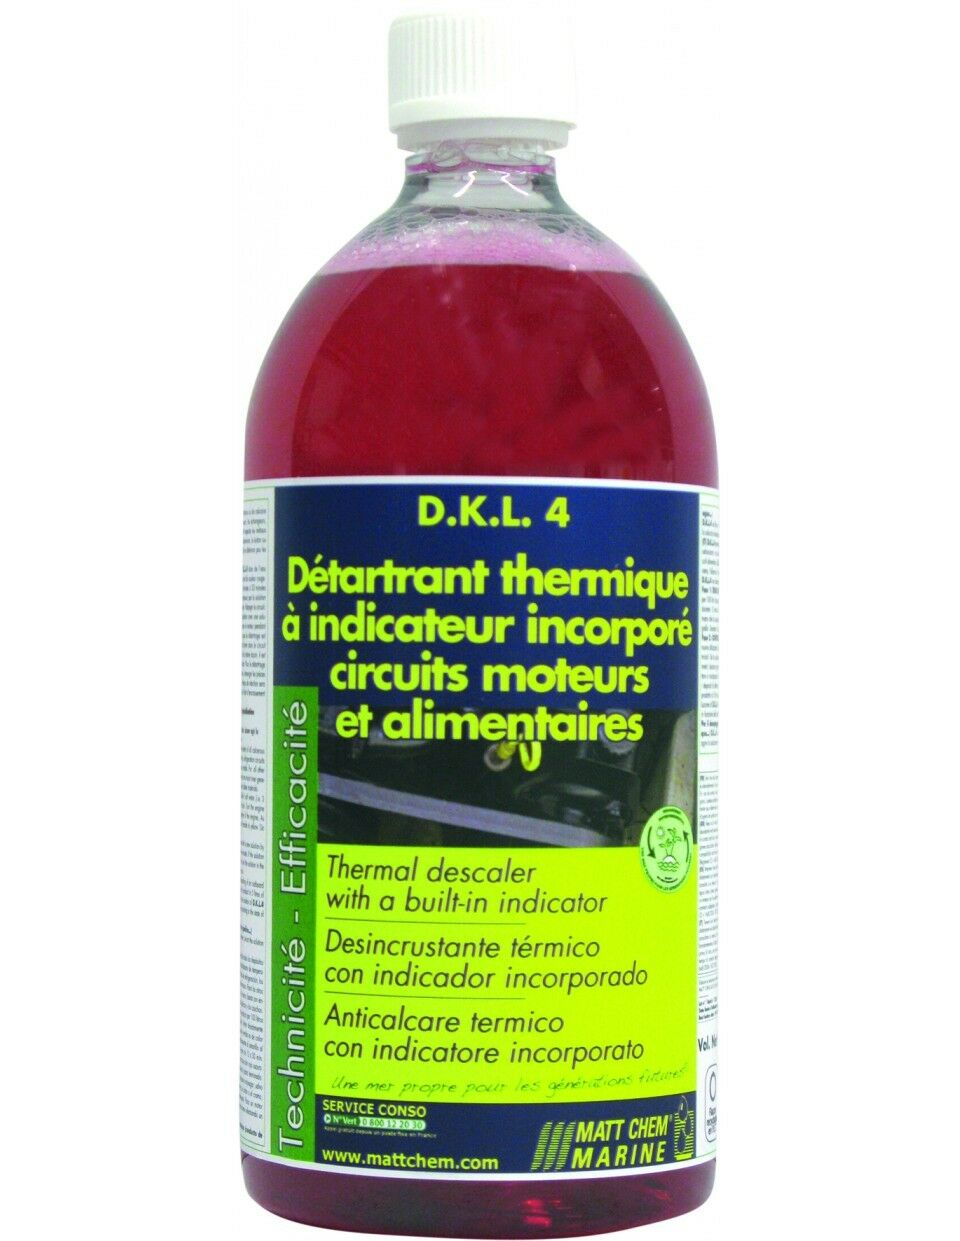 D.K.L.4 DETARTRANT HEAT HAS INDICATOR INCORPORATED  169.1oz MATT CHEM 2171 11   clearance up to 70%